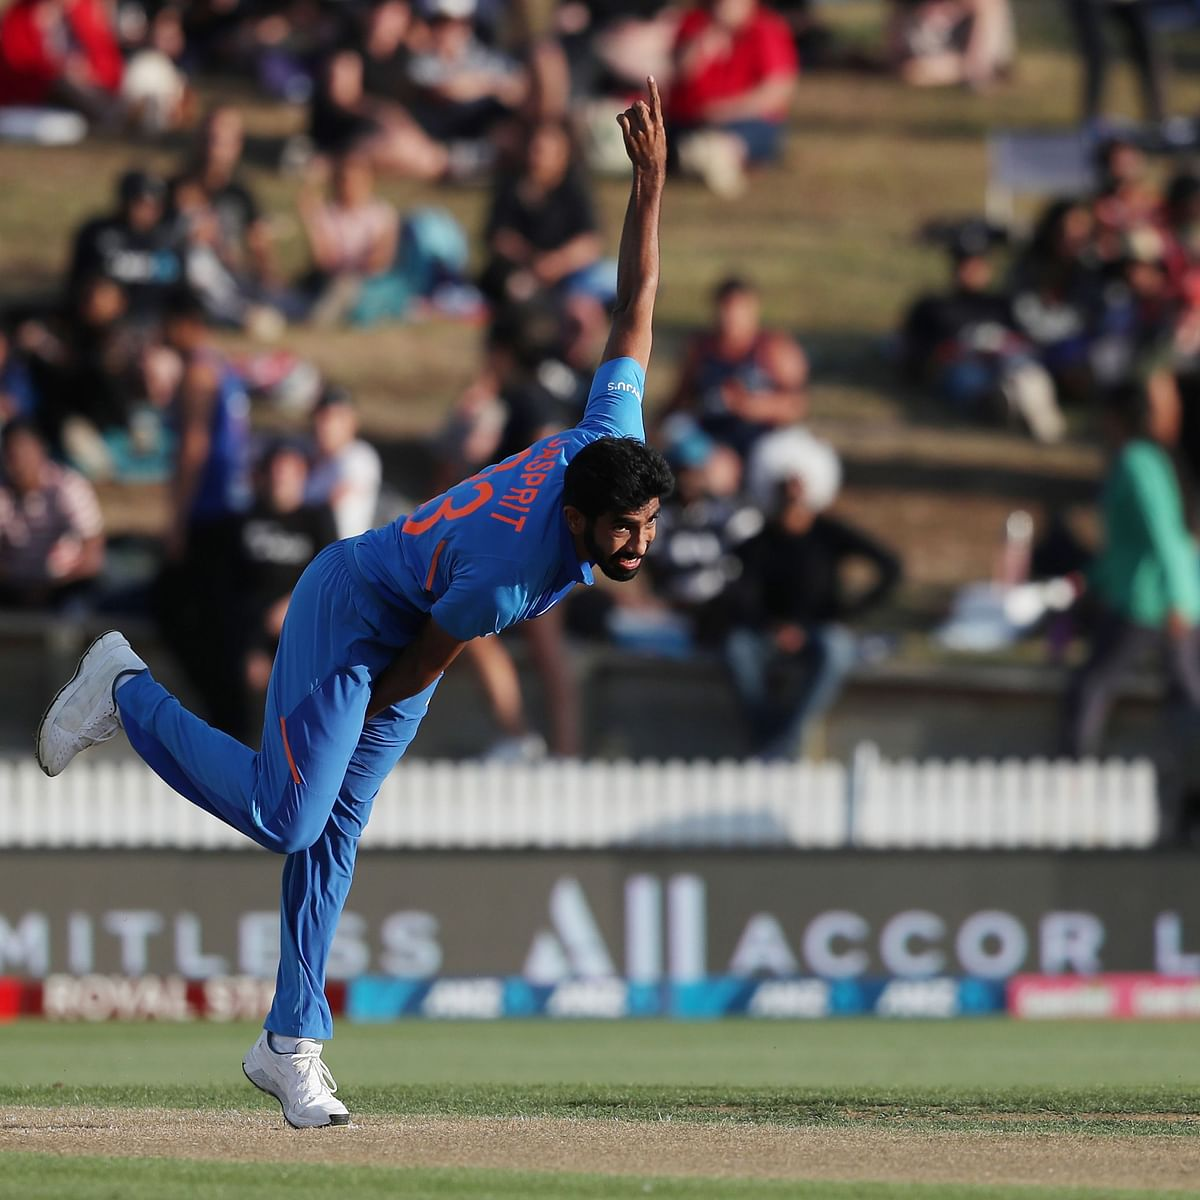 Has Jasprit Bumrah been decoded by batsmen?